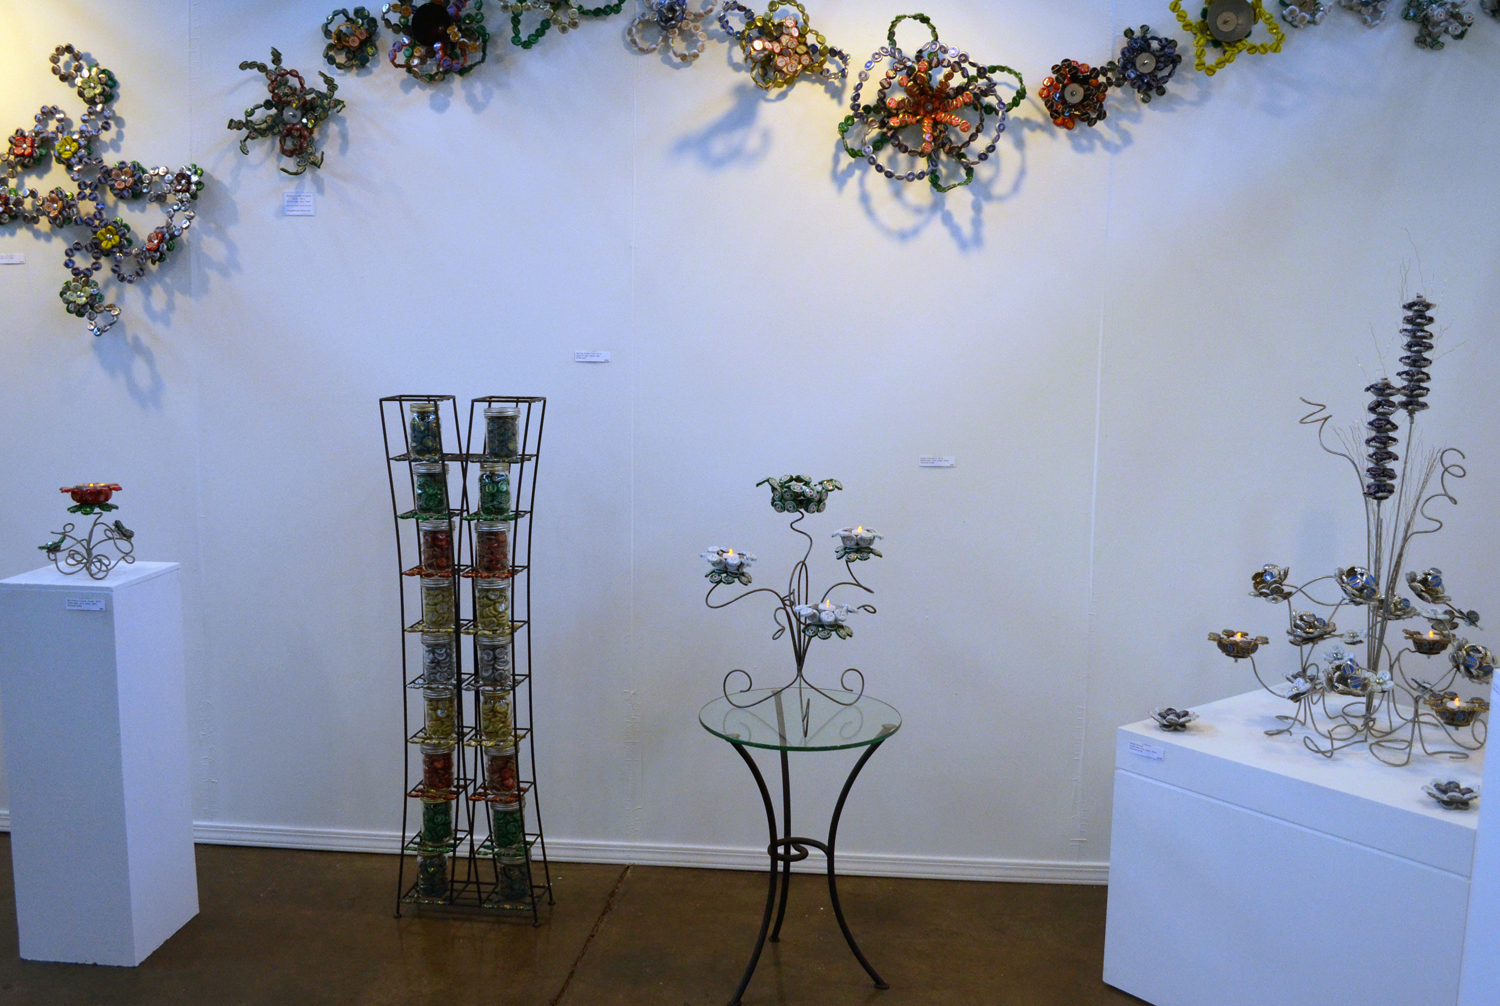 I especially enjoyed playing with new ways to display some of my older bottle cap wall flowers.